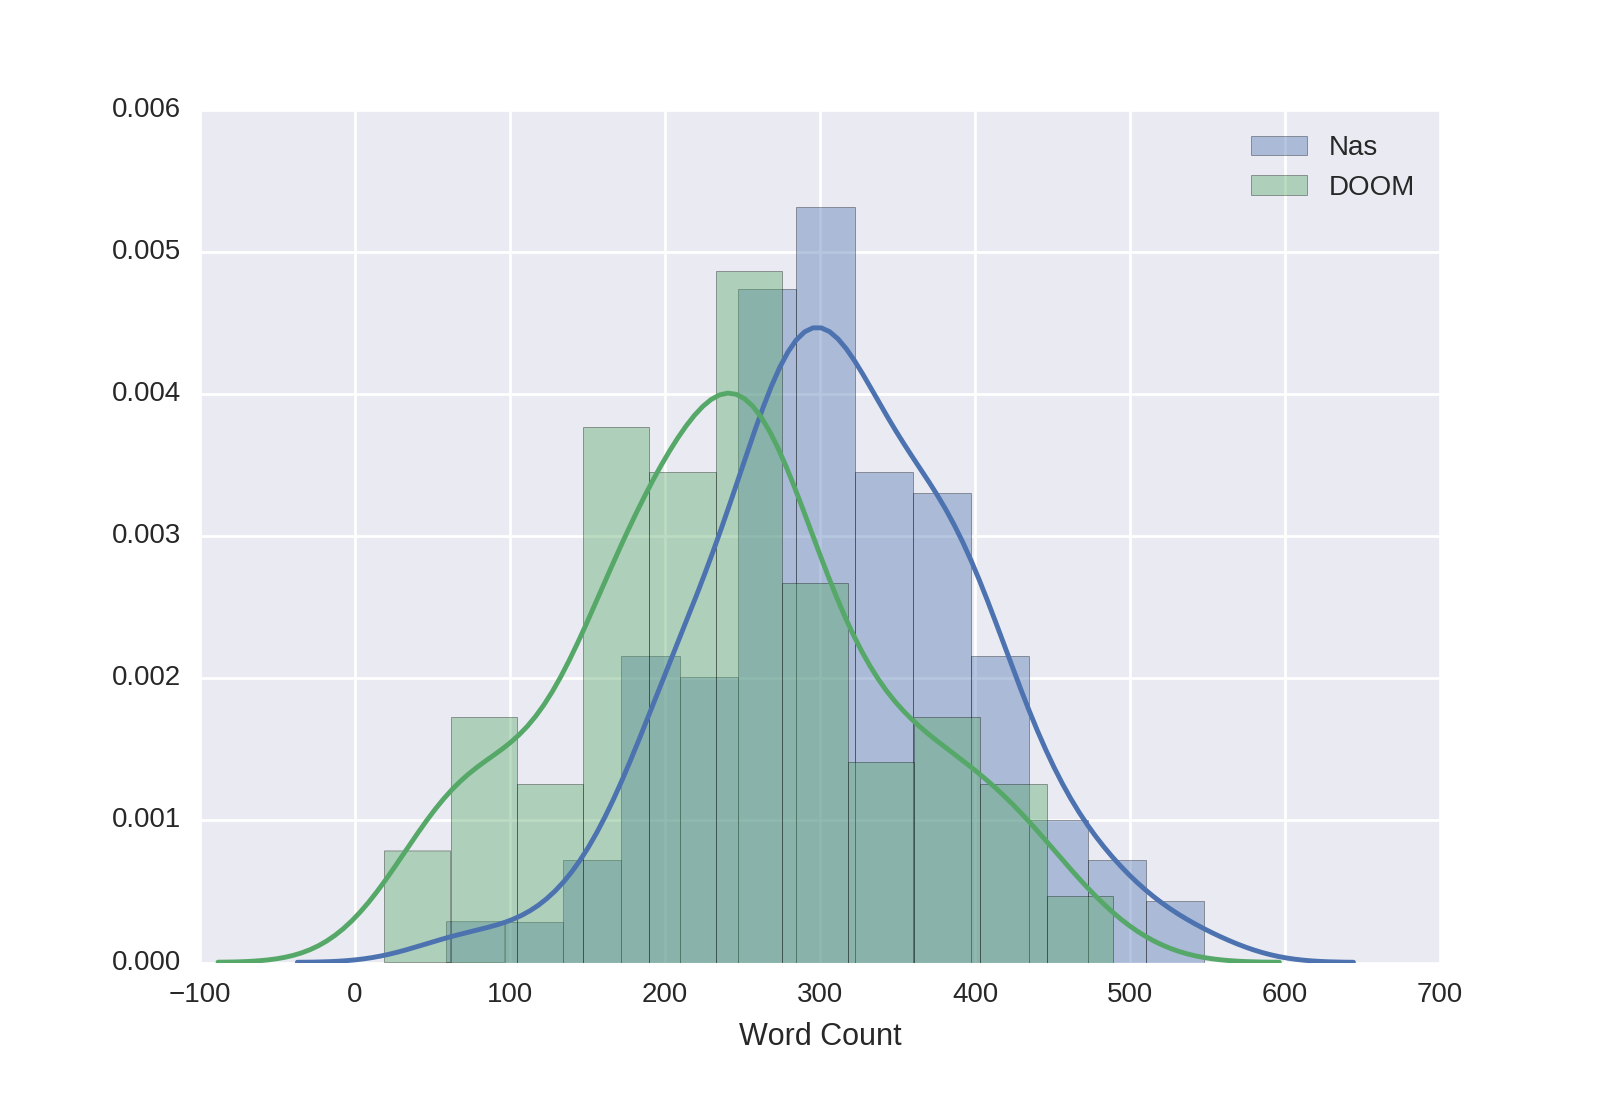 word count histogram